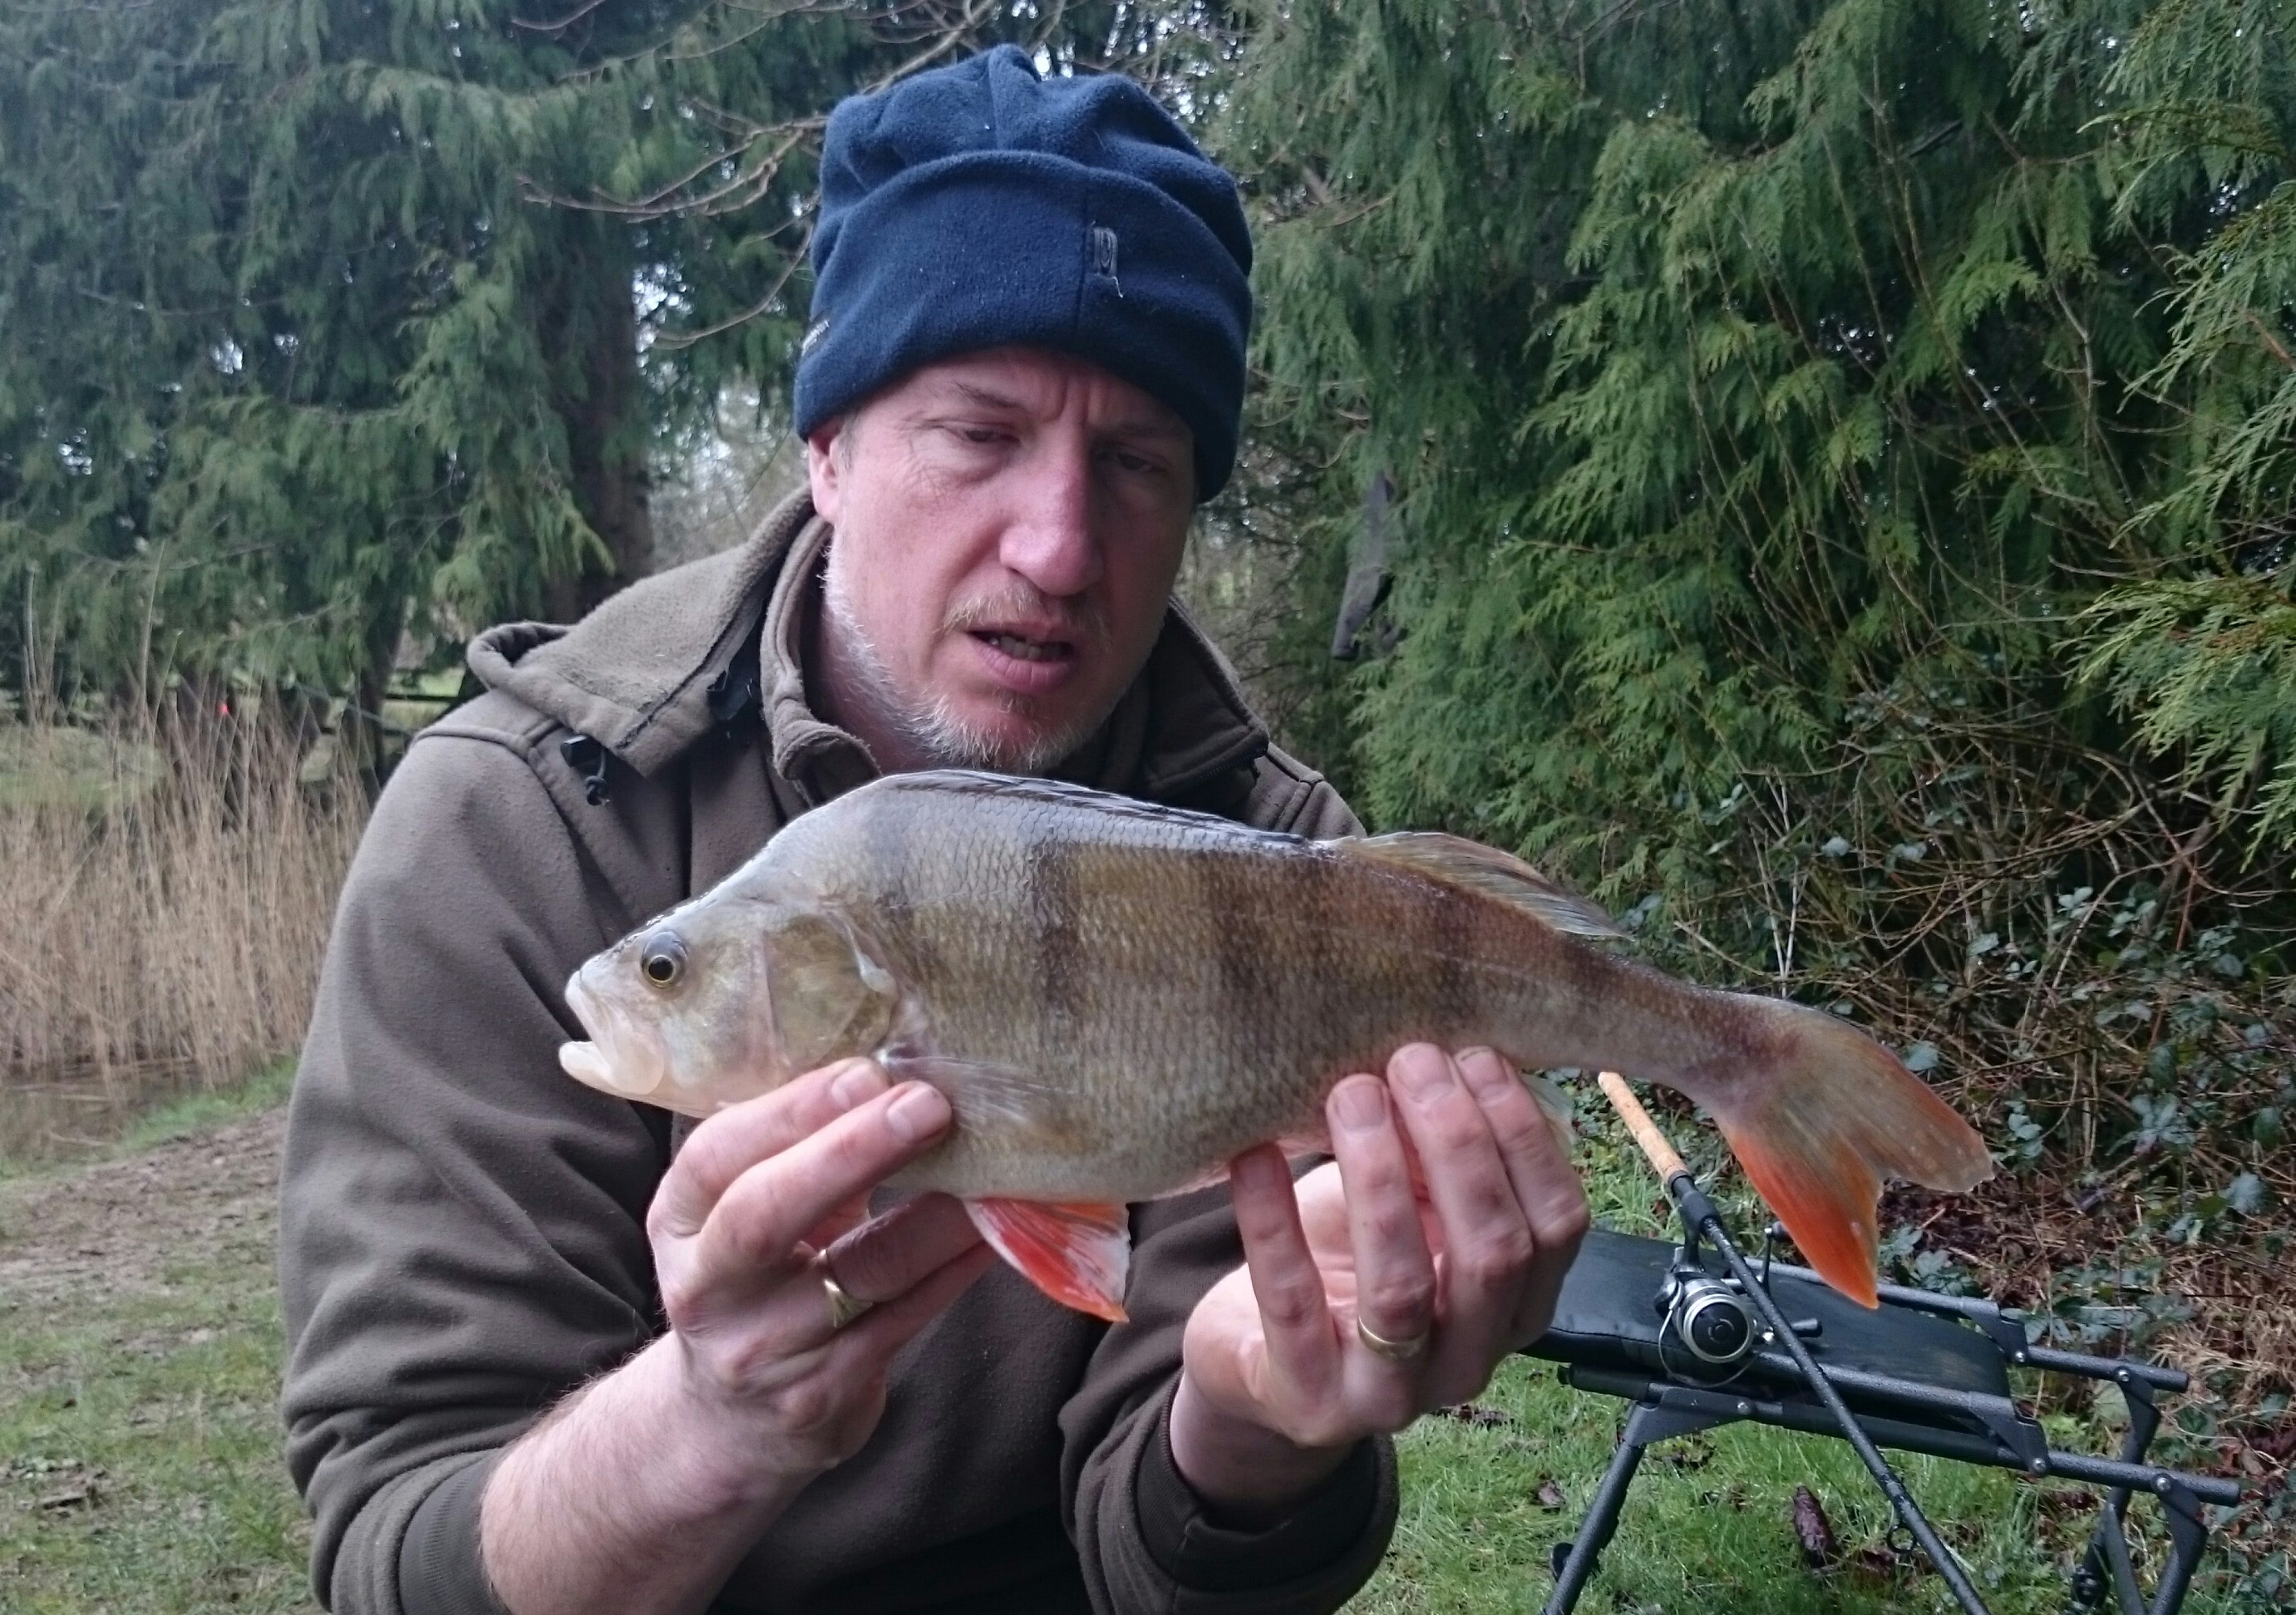 Fishing holiday in devon with private fishing lake for Private fishing lakes